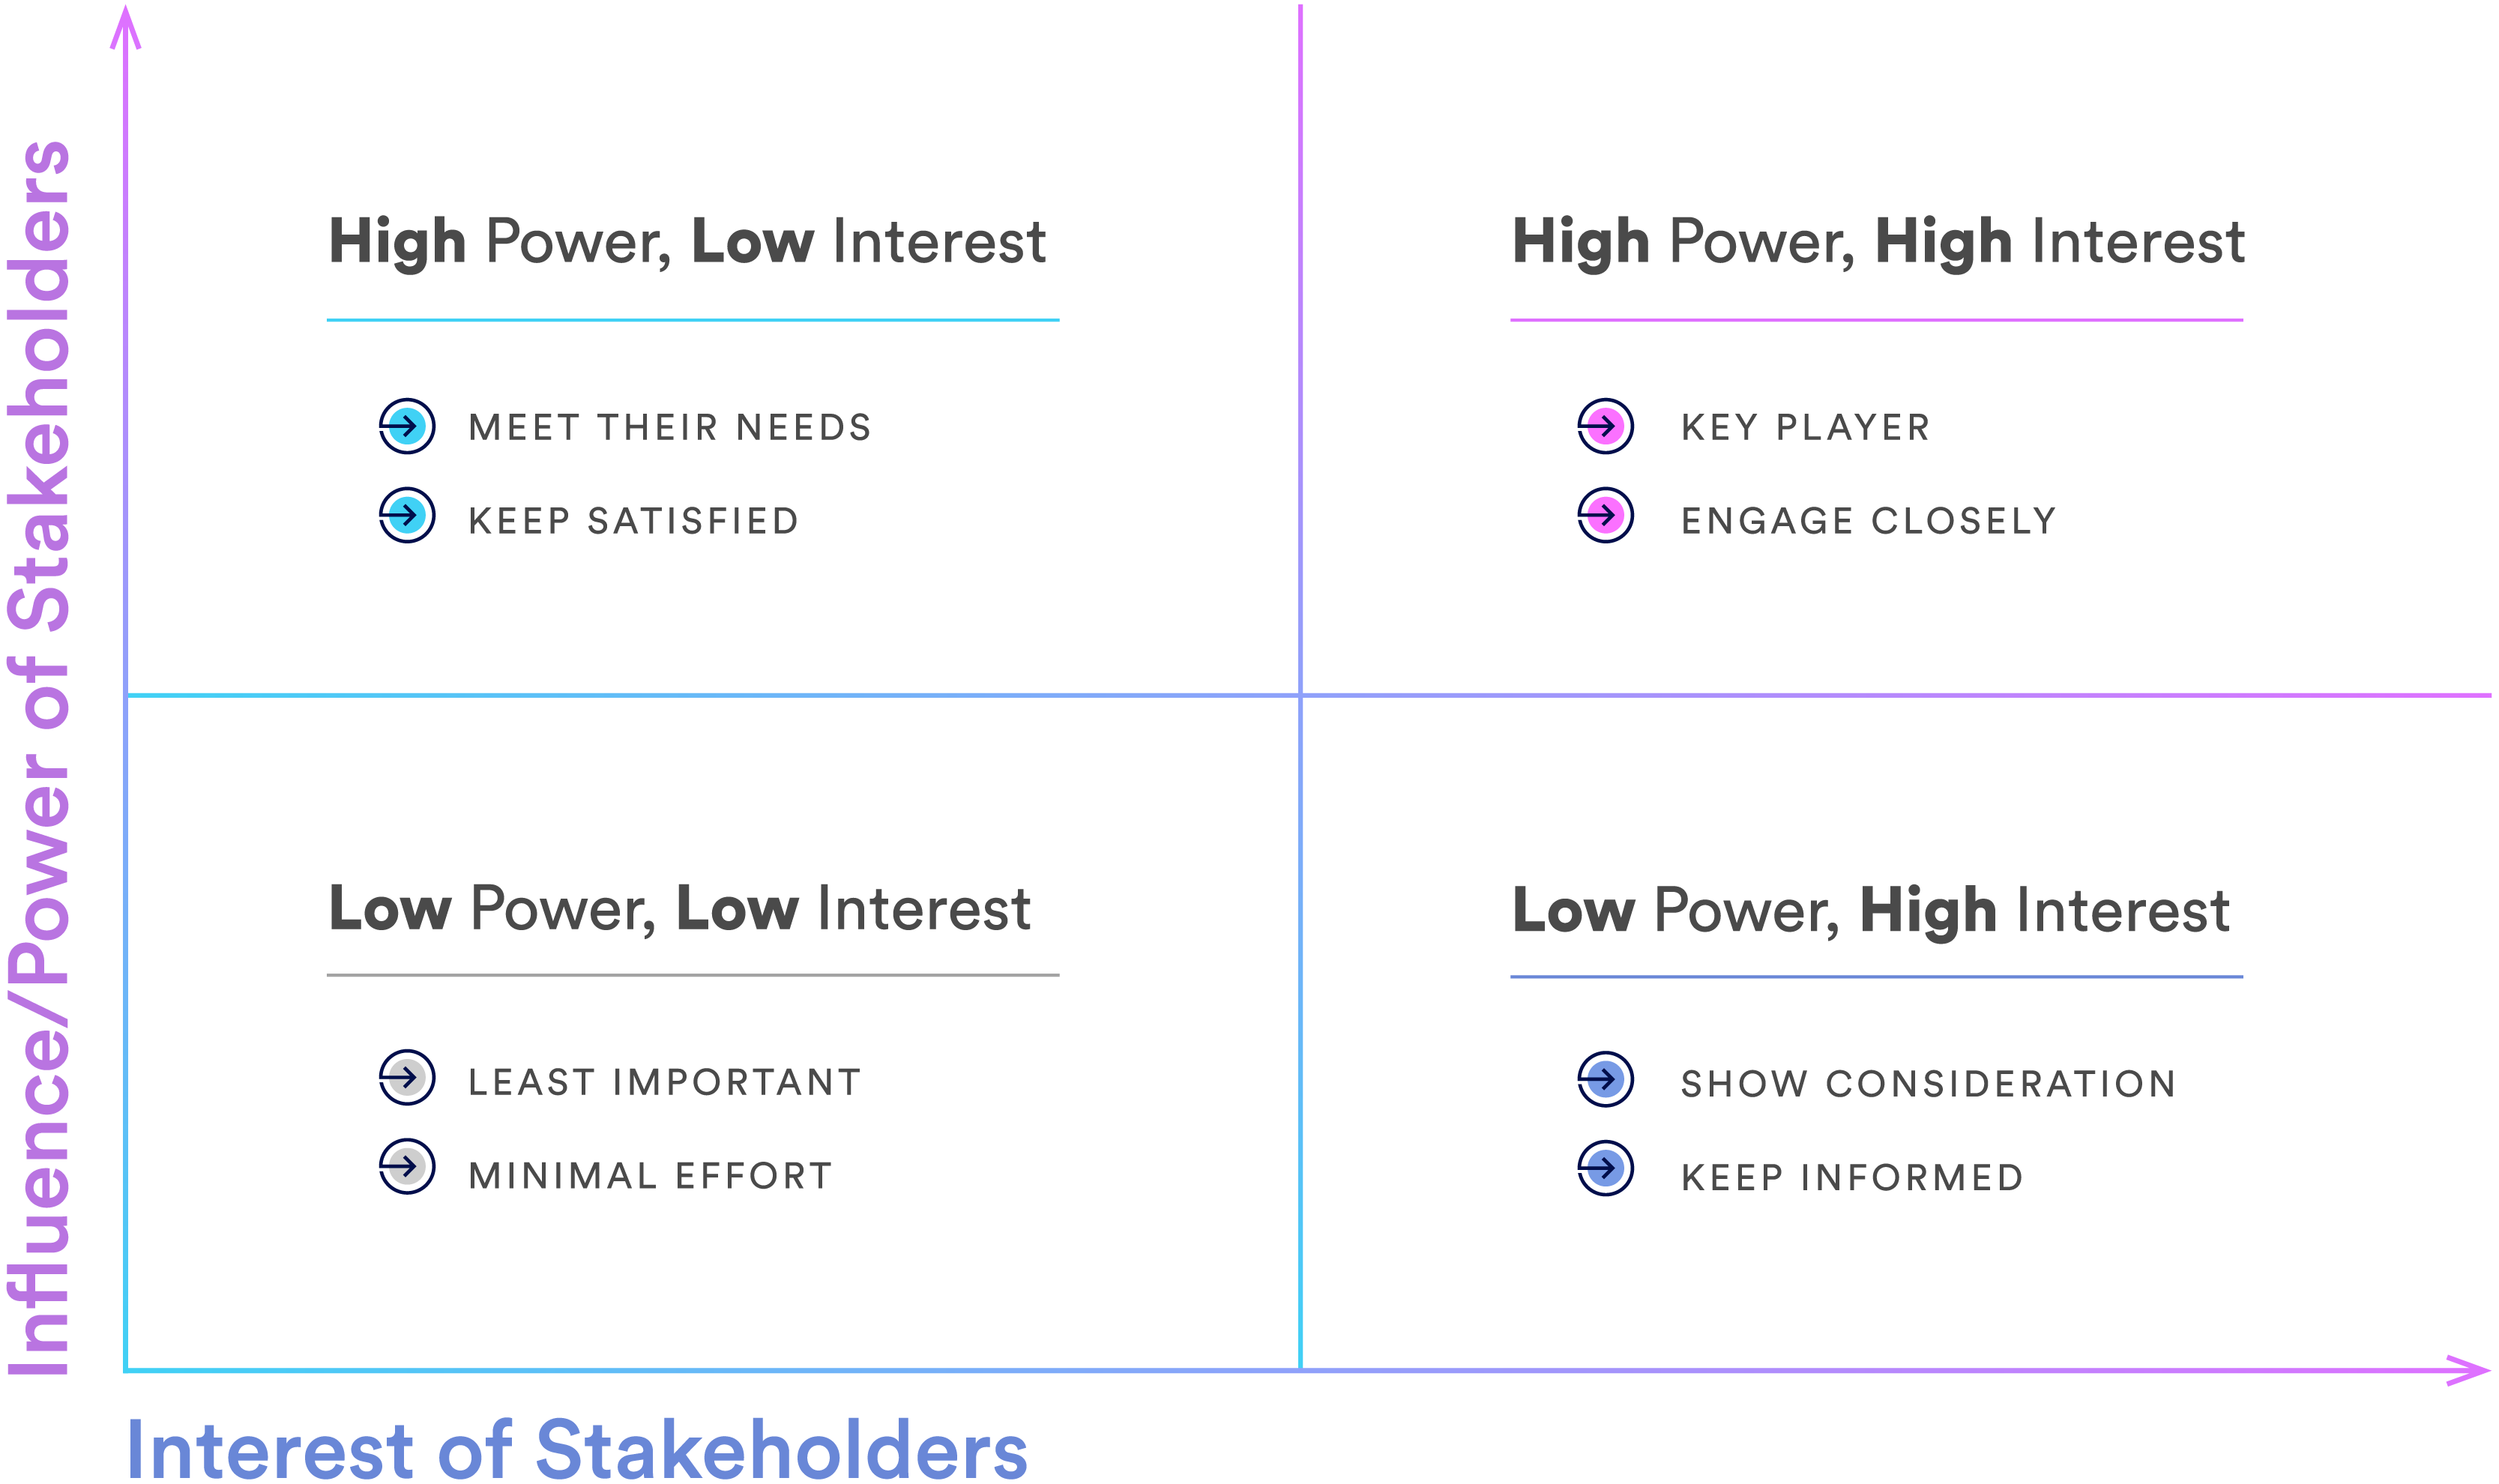 The interest and influence matrix for implementation